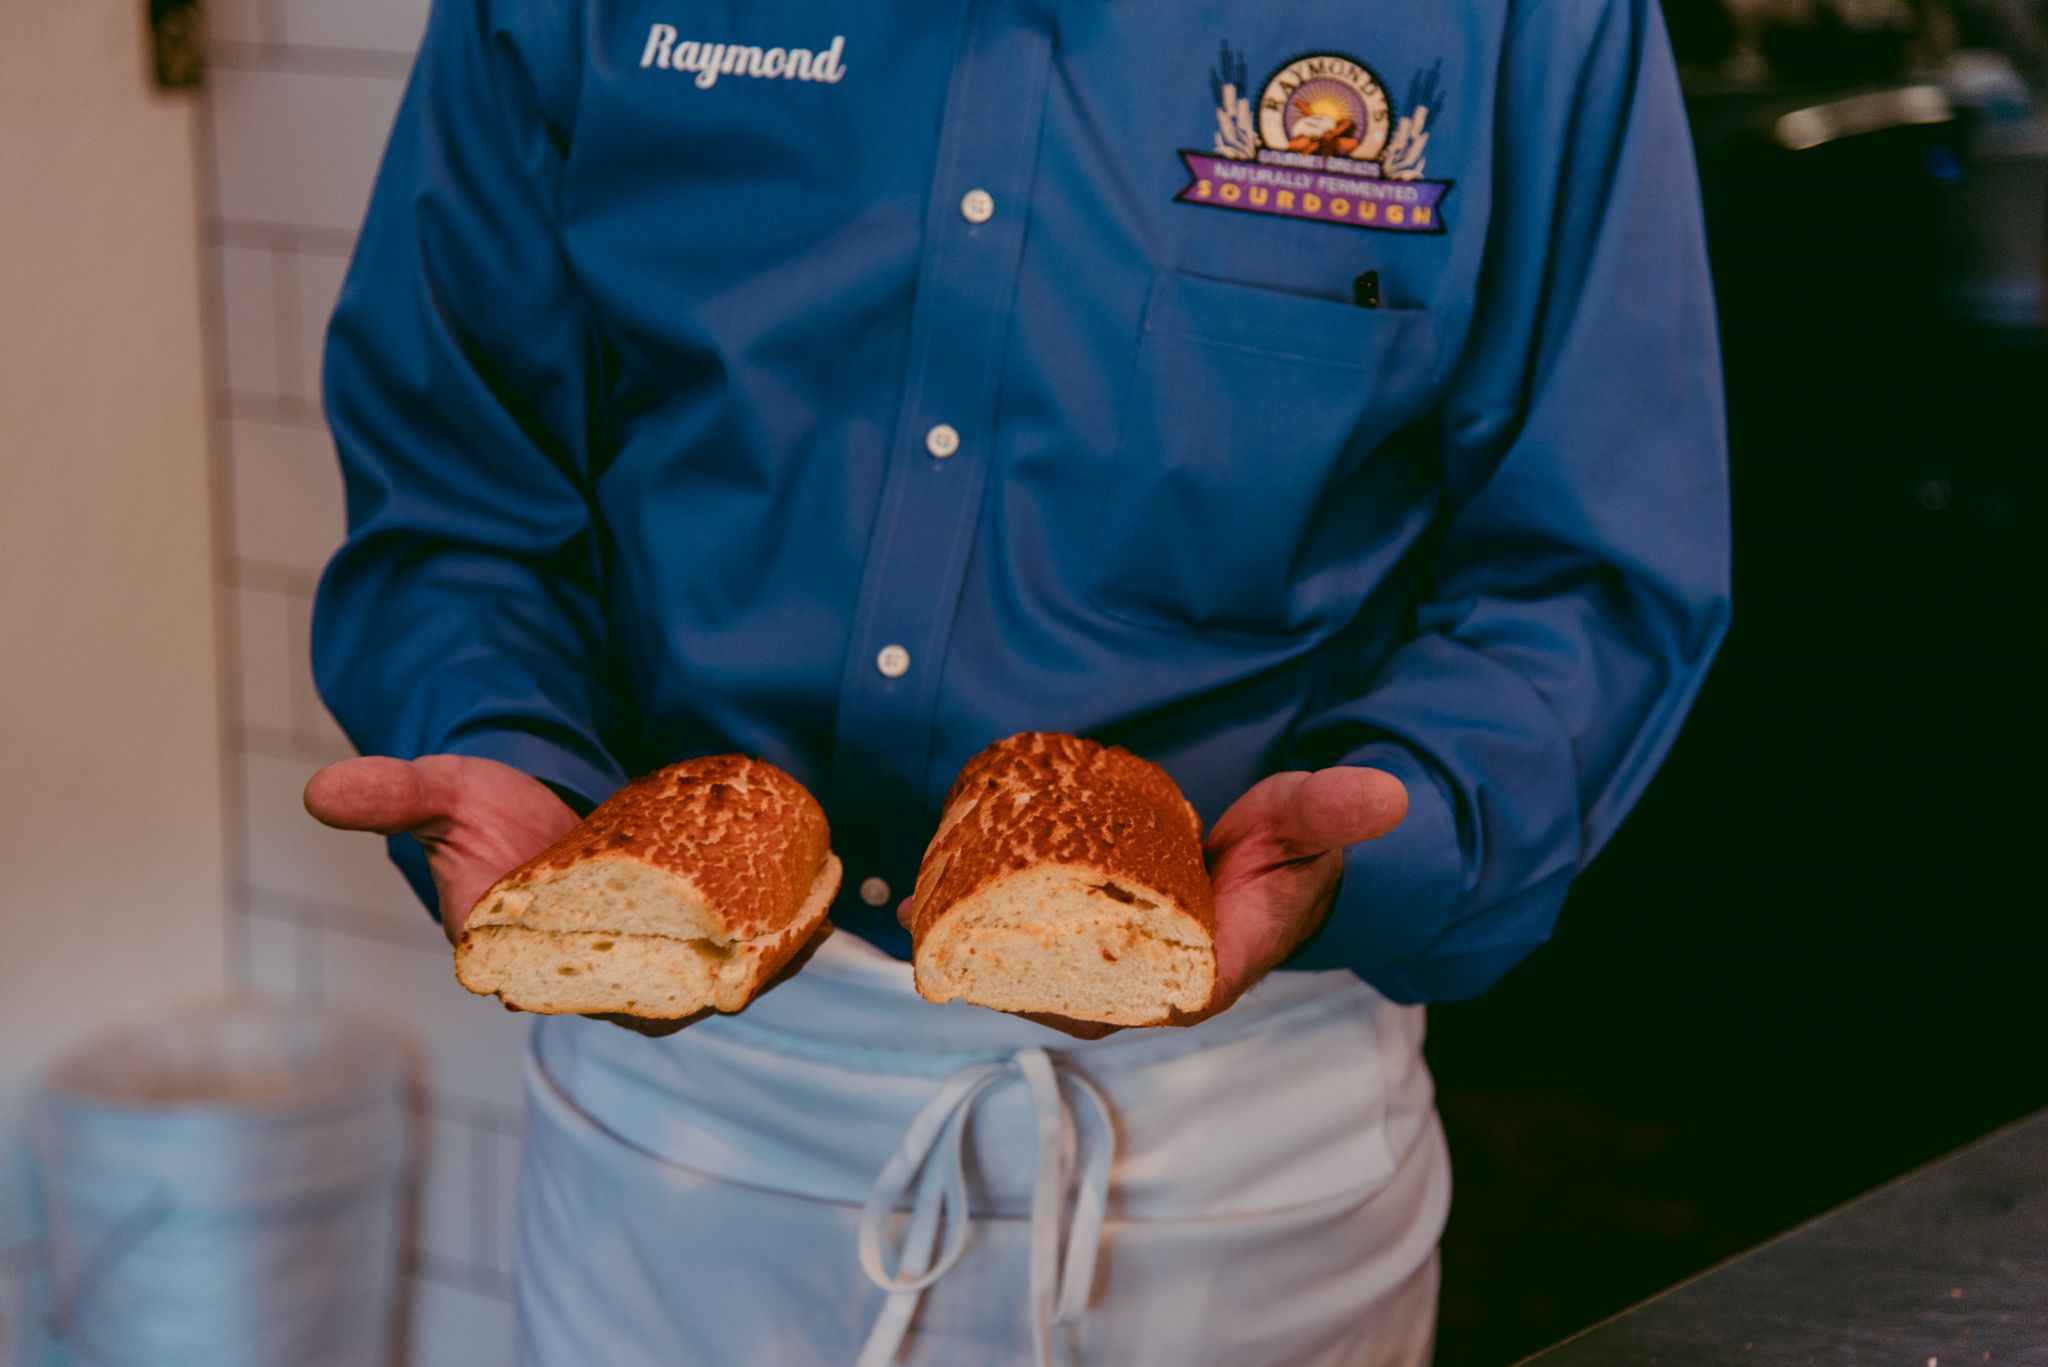 SF is known for sourdough, but is this the Bay Area's signature bread?